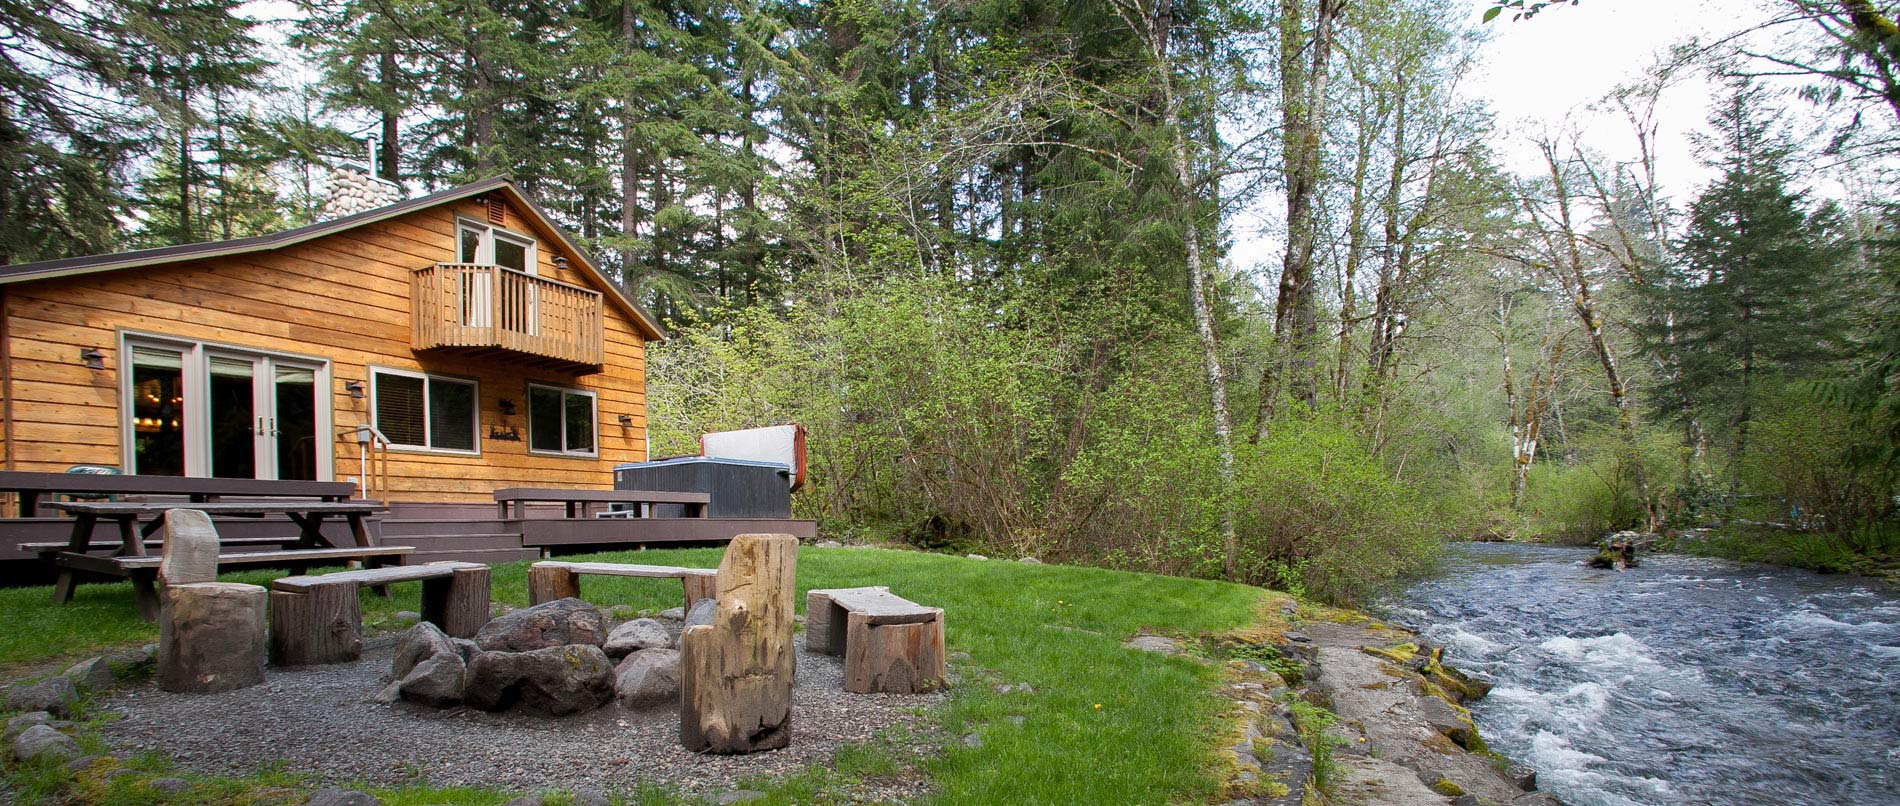 Mount Rainier luxury cabin rentals